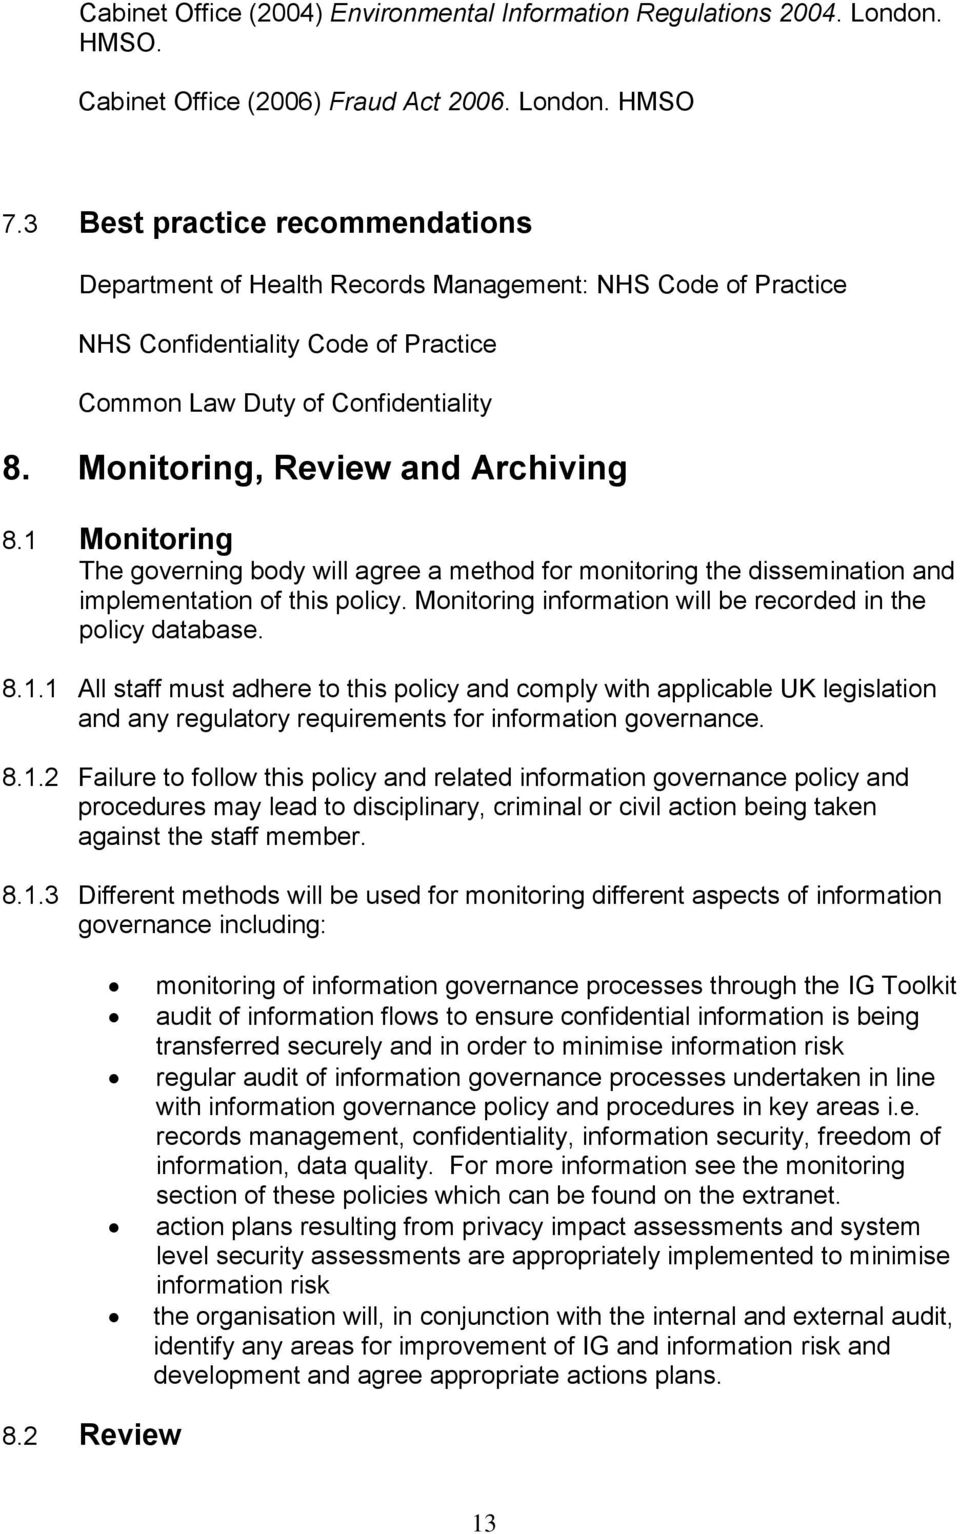 Monitoring, Review and Archiving 8.1 Monitoring The governing body will agree a method for monitoring the dissemination and implementation of this policy.